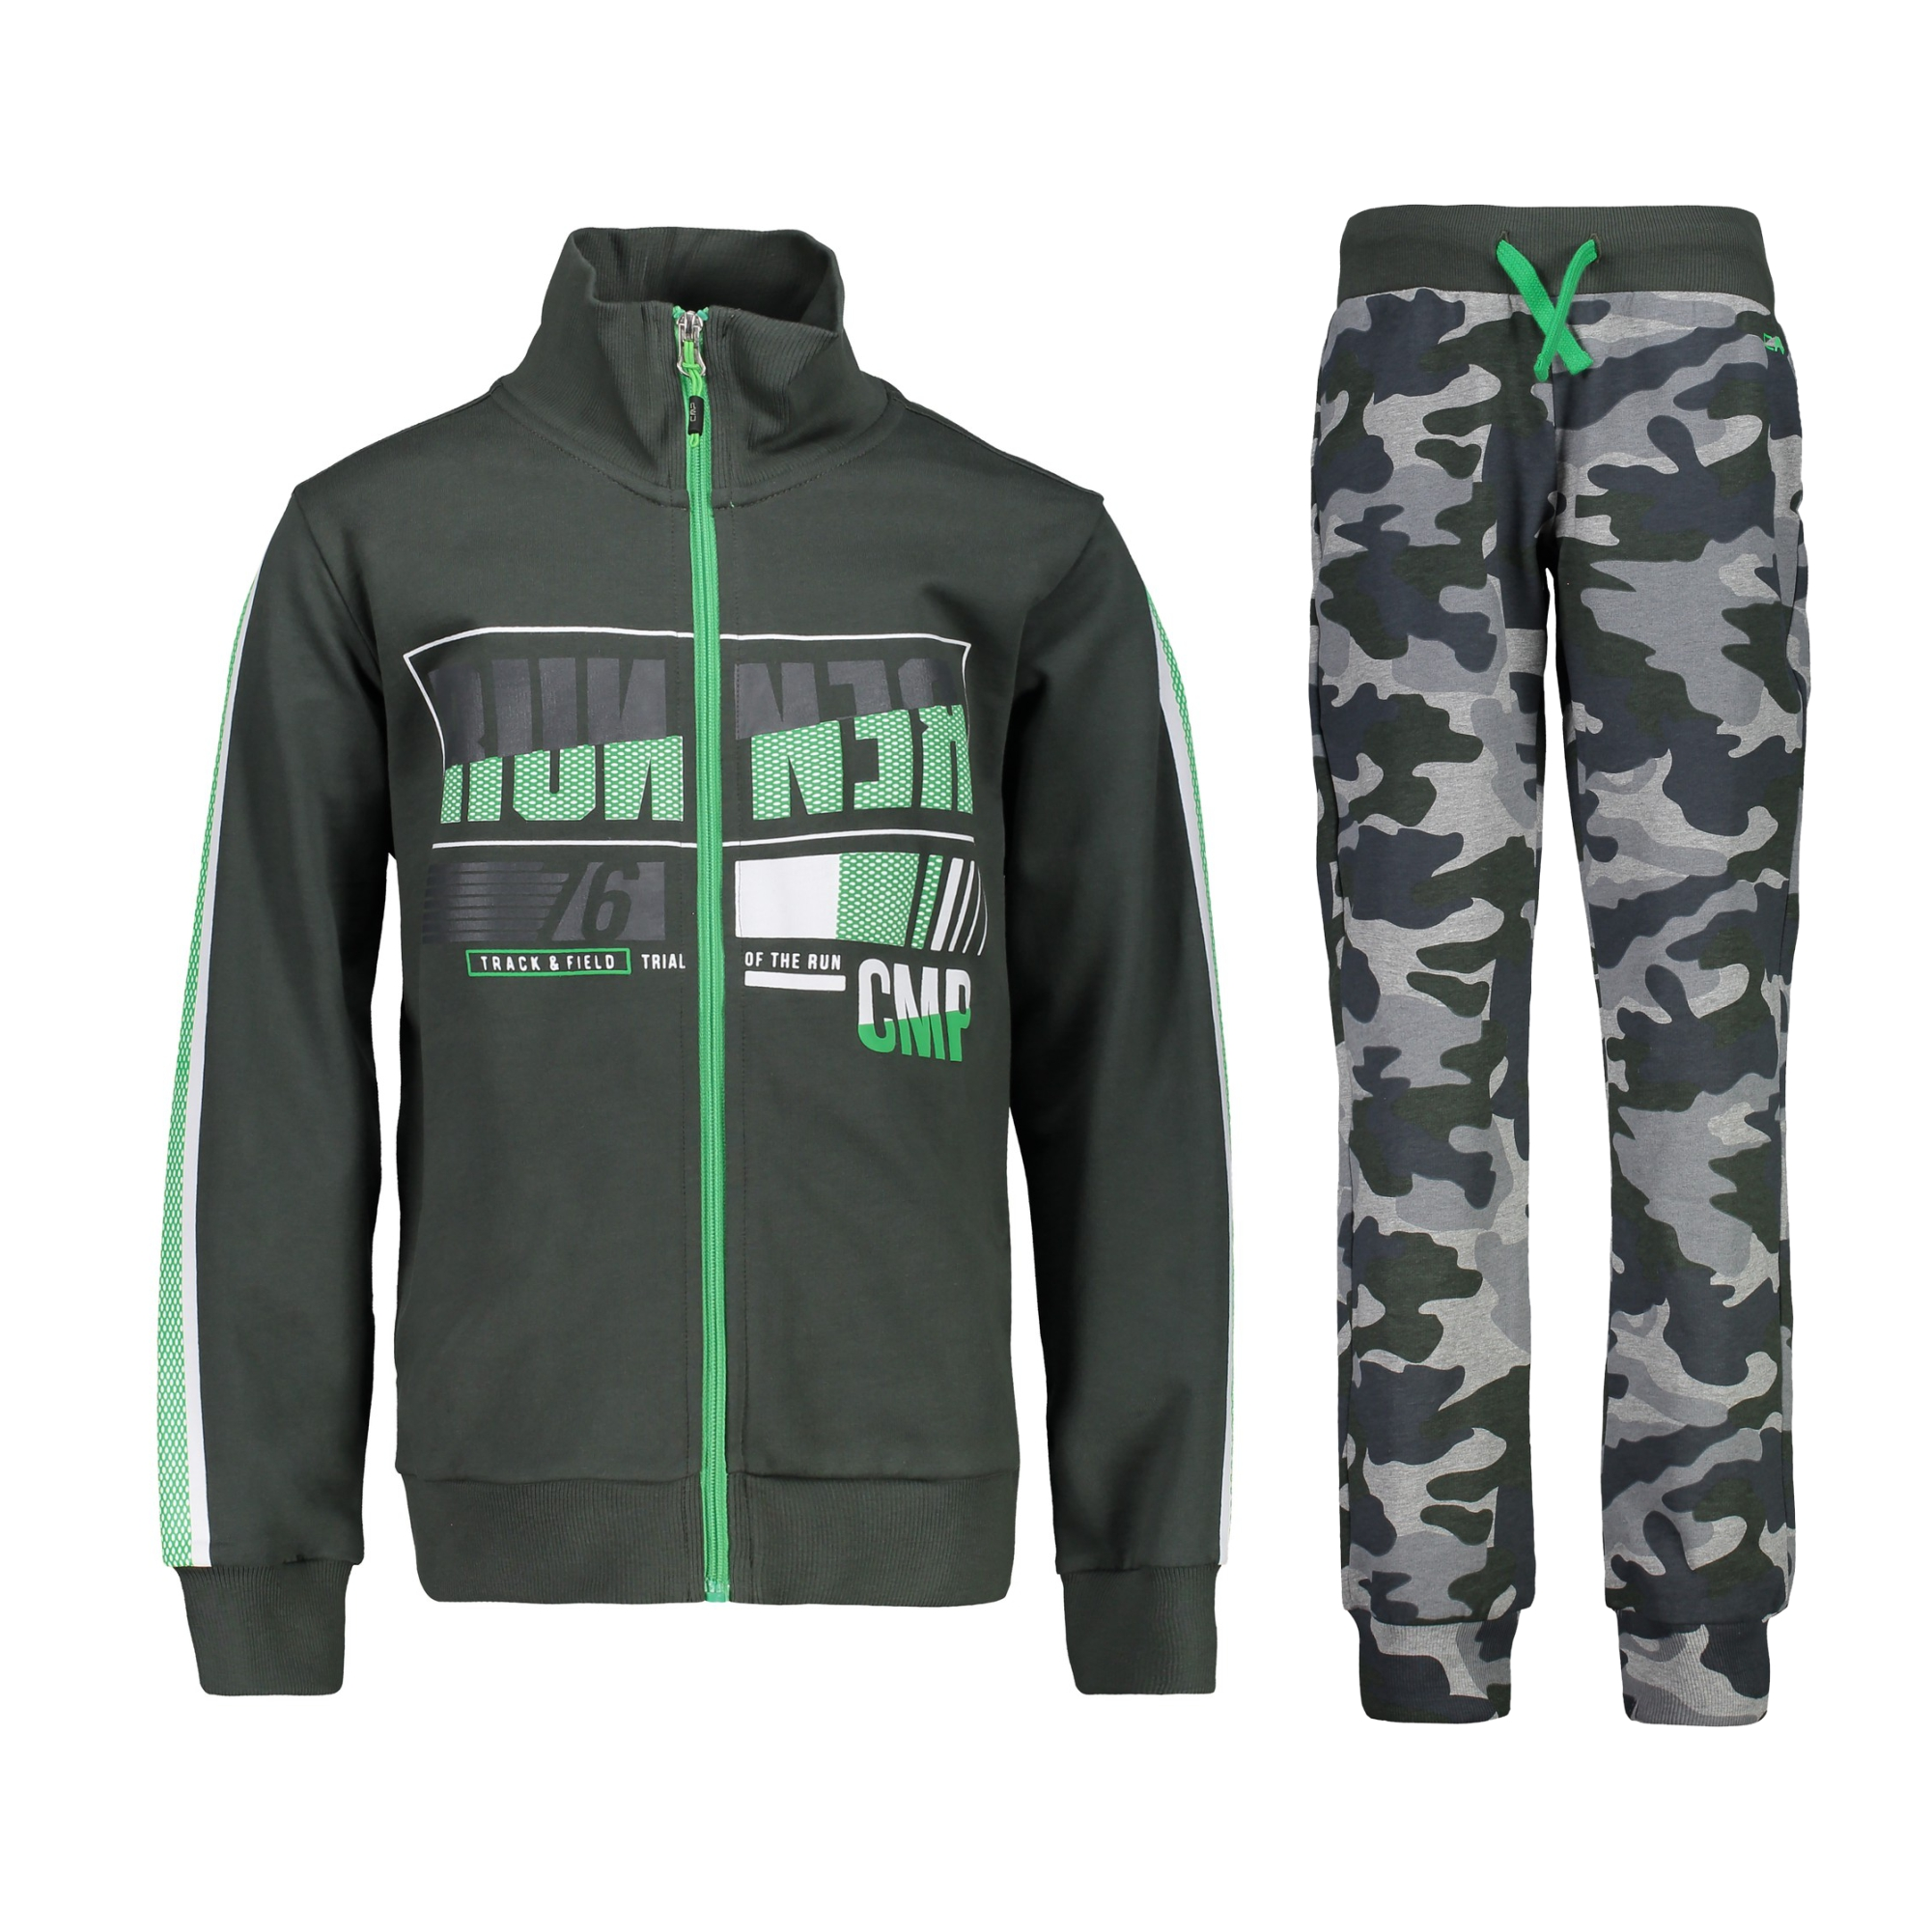 Khaki Green Tracksuit Womens,Green Adidas Tracksuit Toddler,A M Green Training Suit Size S XXXL